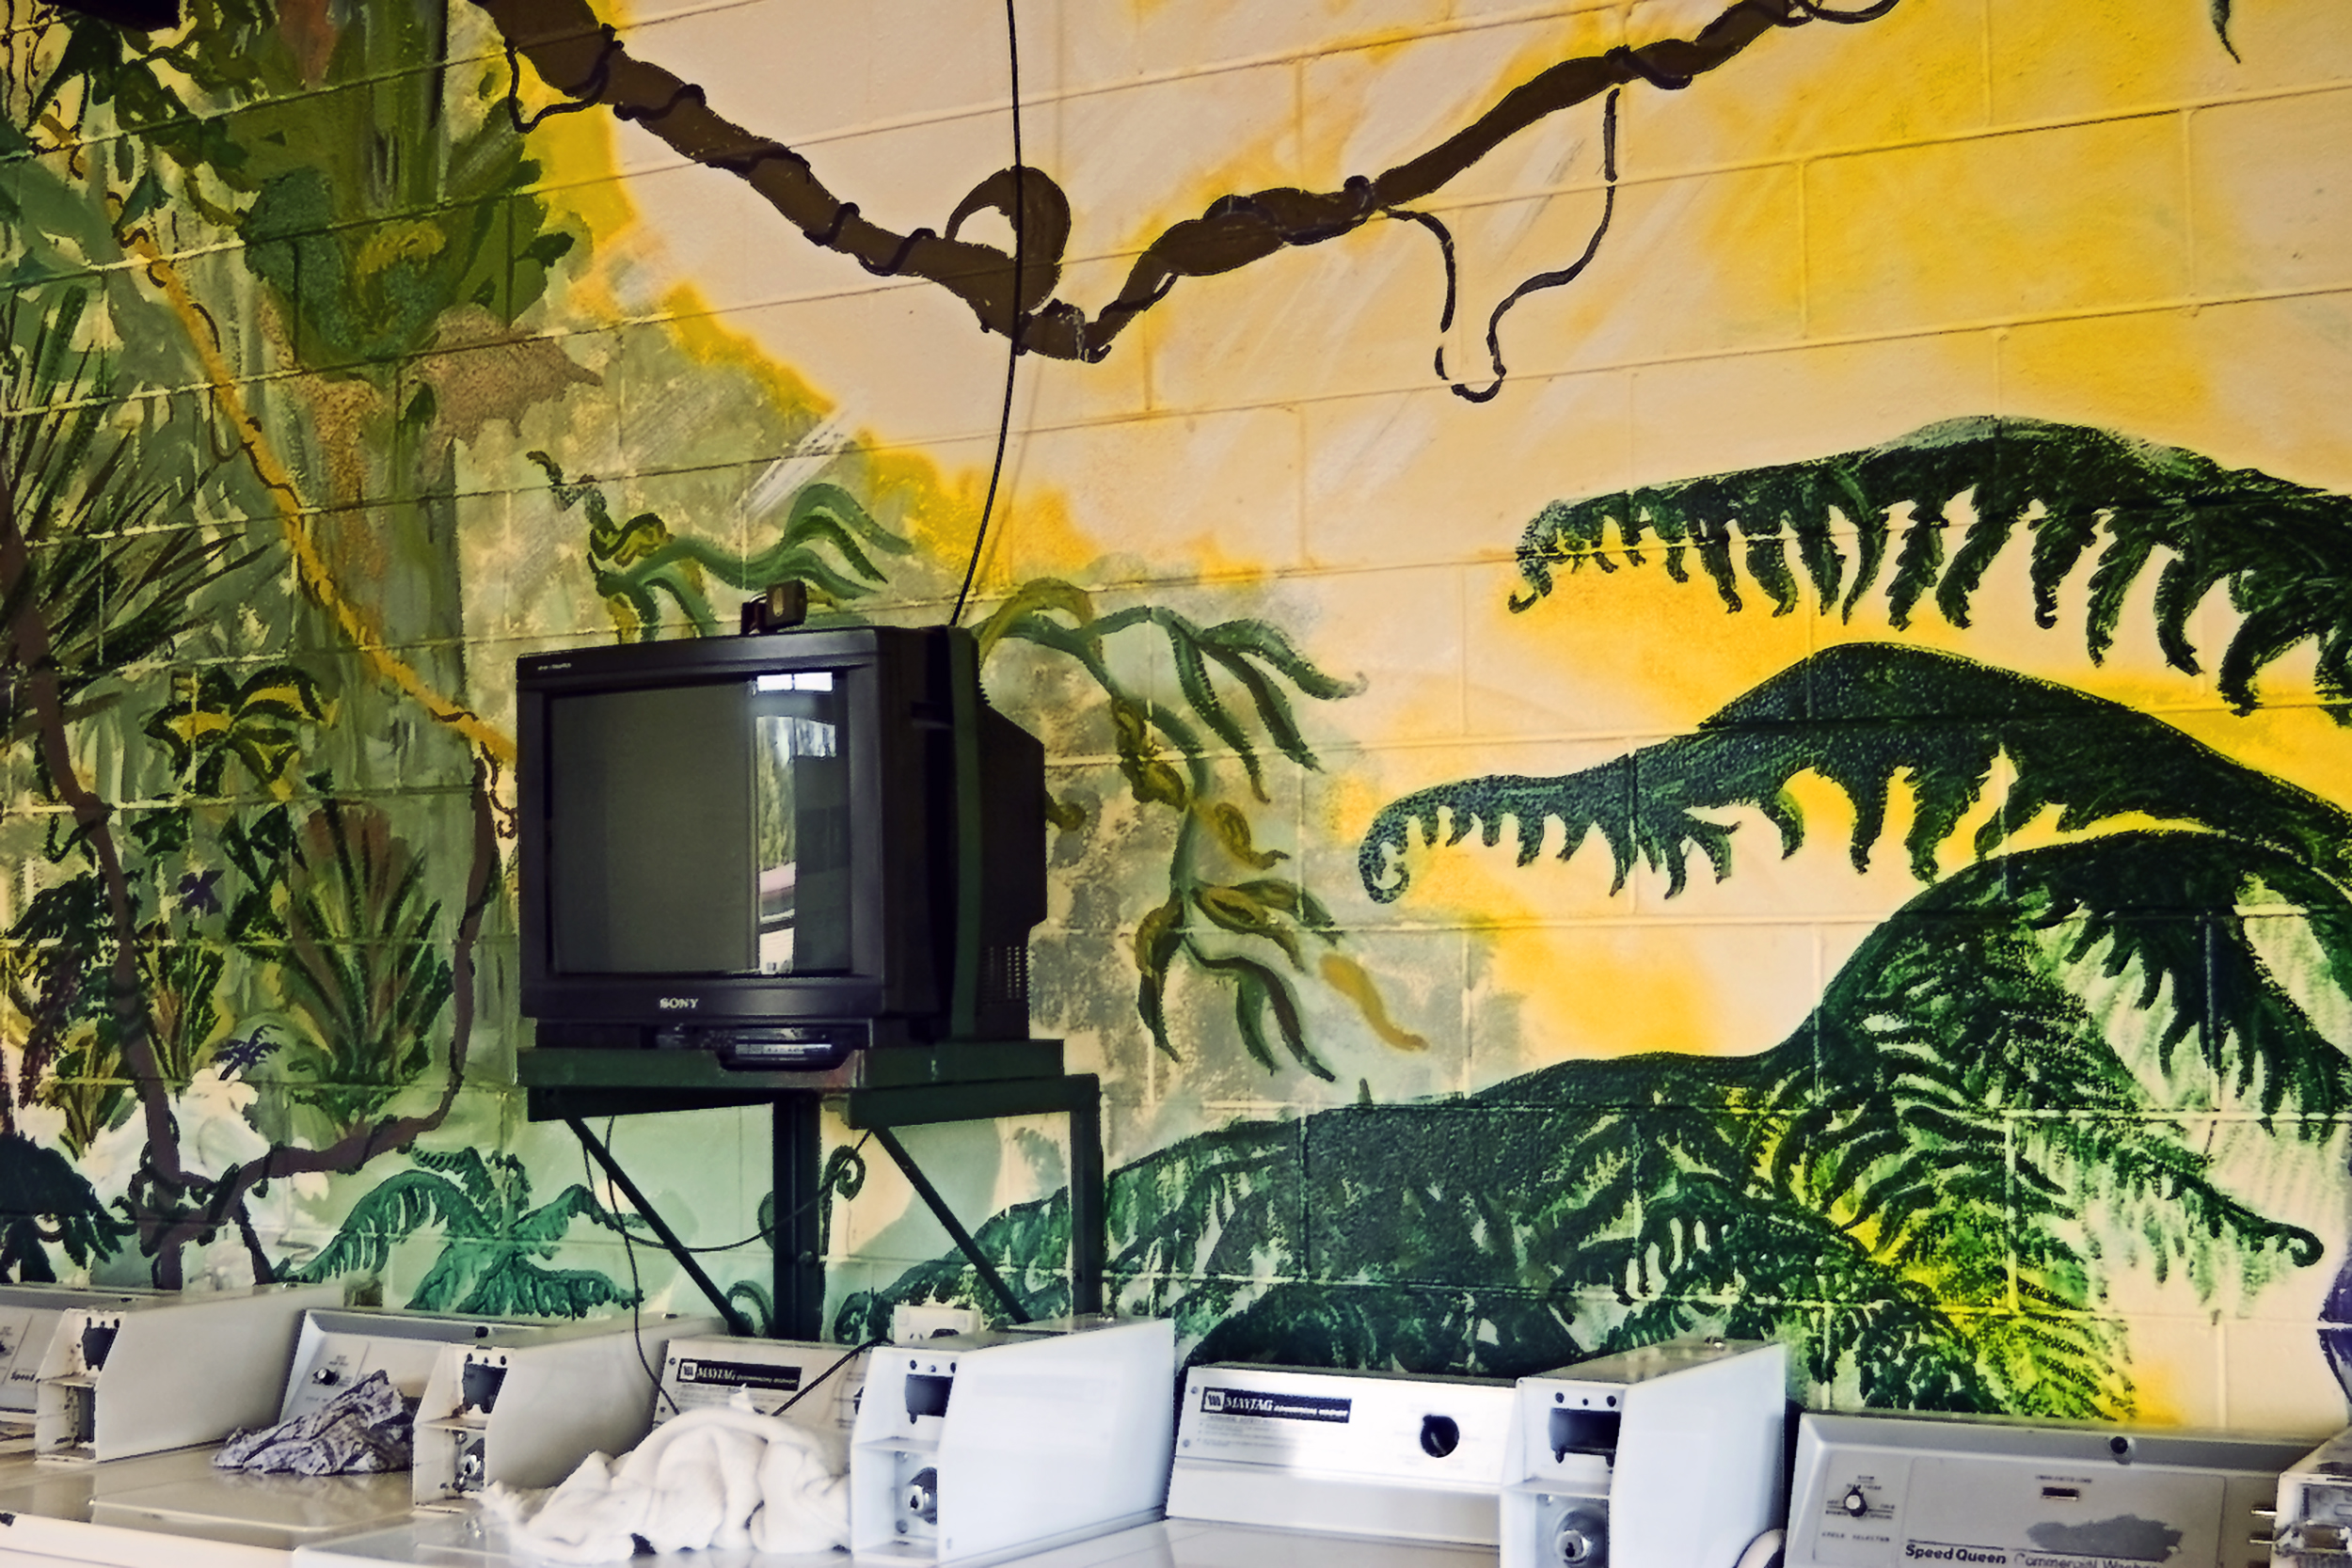 016_didi-s_gilson_australian_street_photography_laundromat_mural_tv_colour_washers_2006.jpg